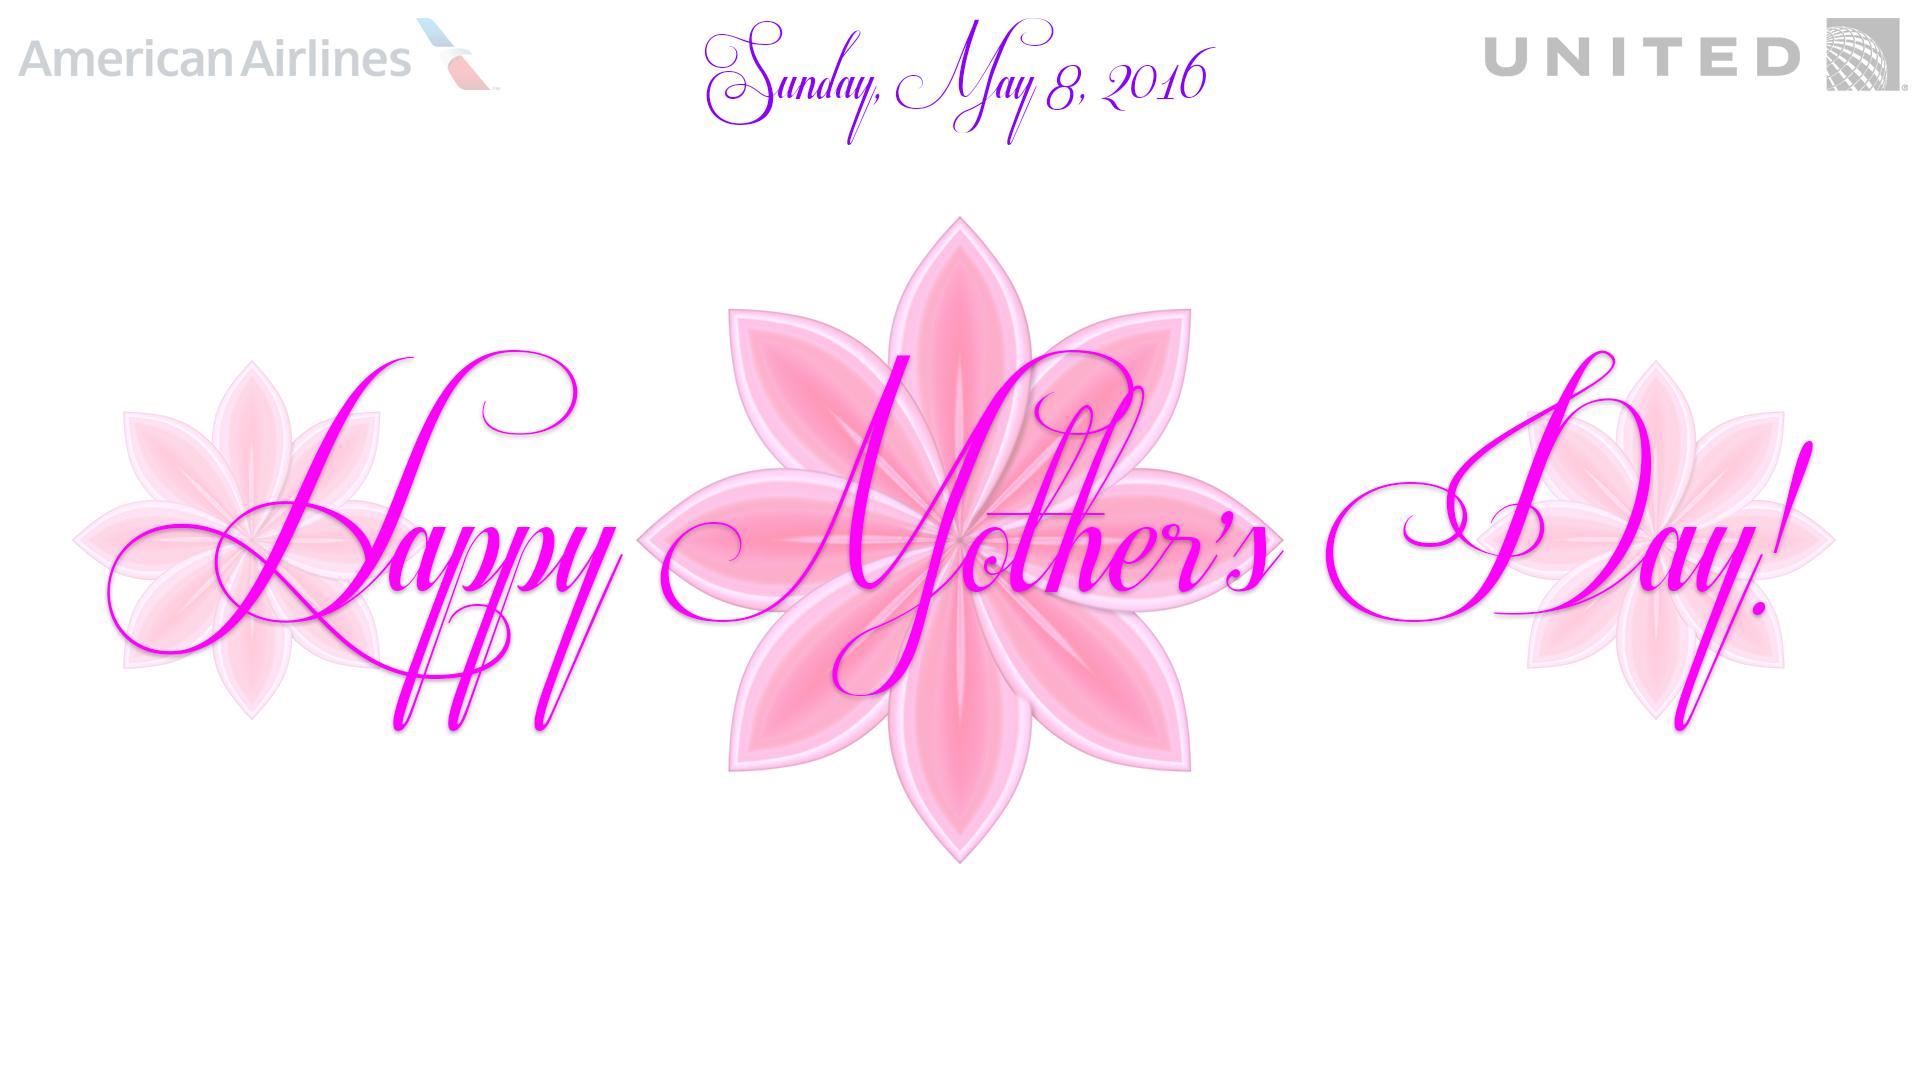 happy_mother_s_day_wallpaper_by_allenacnguyen-da1xnj1.jpg